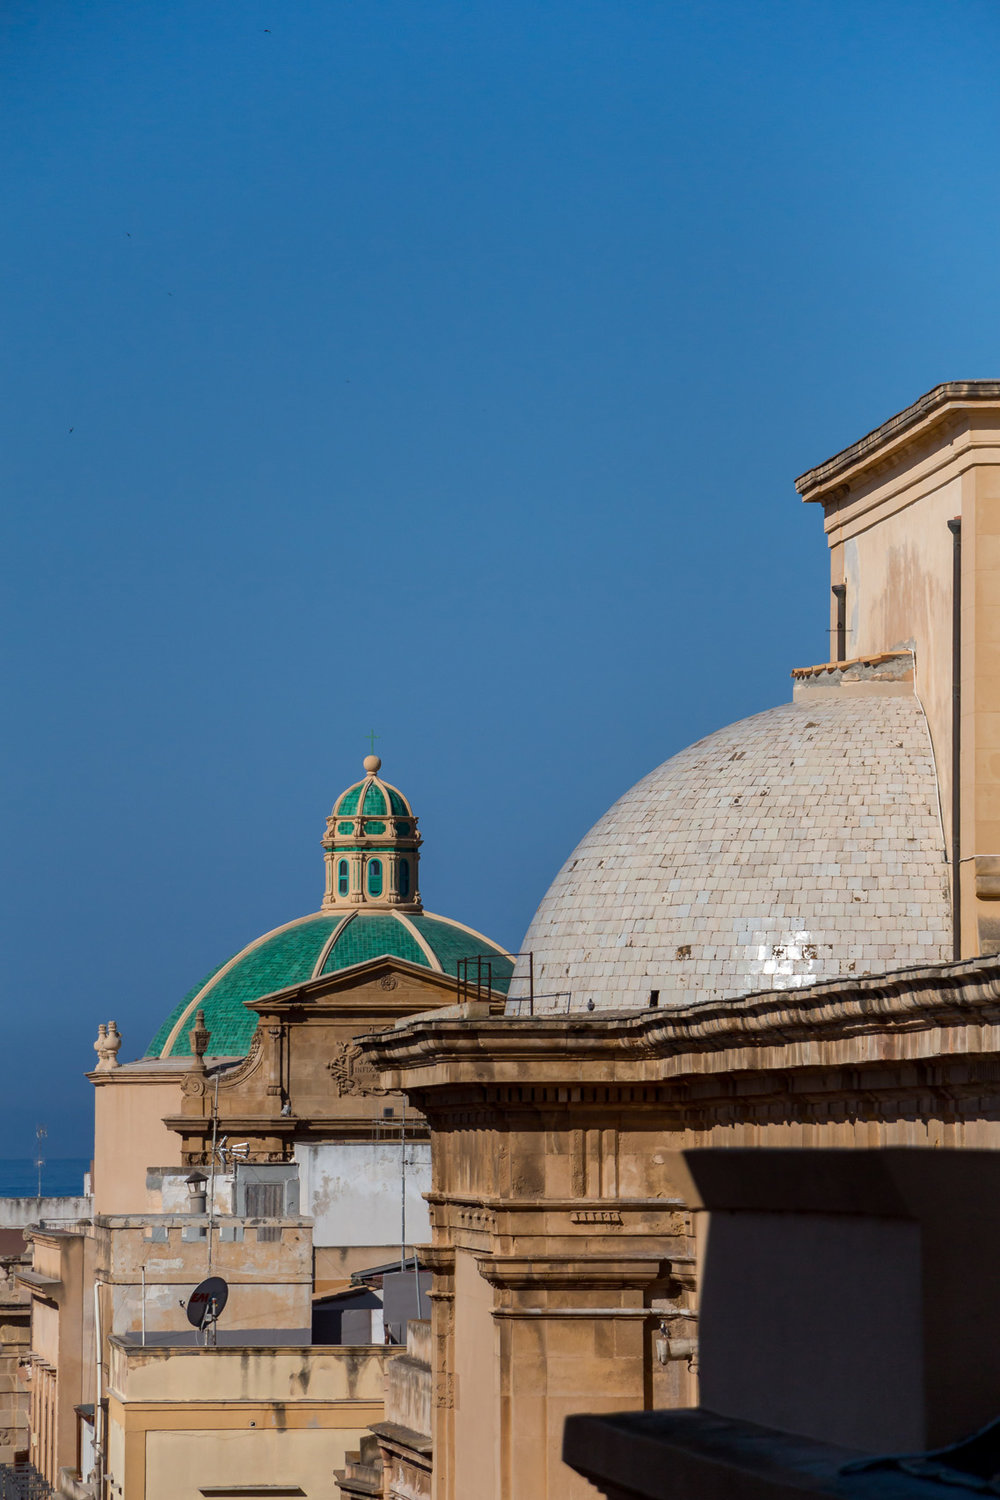 Roofs of Marsala, Sicily